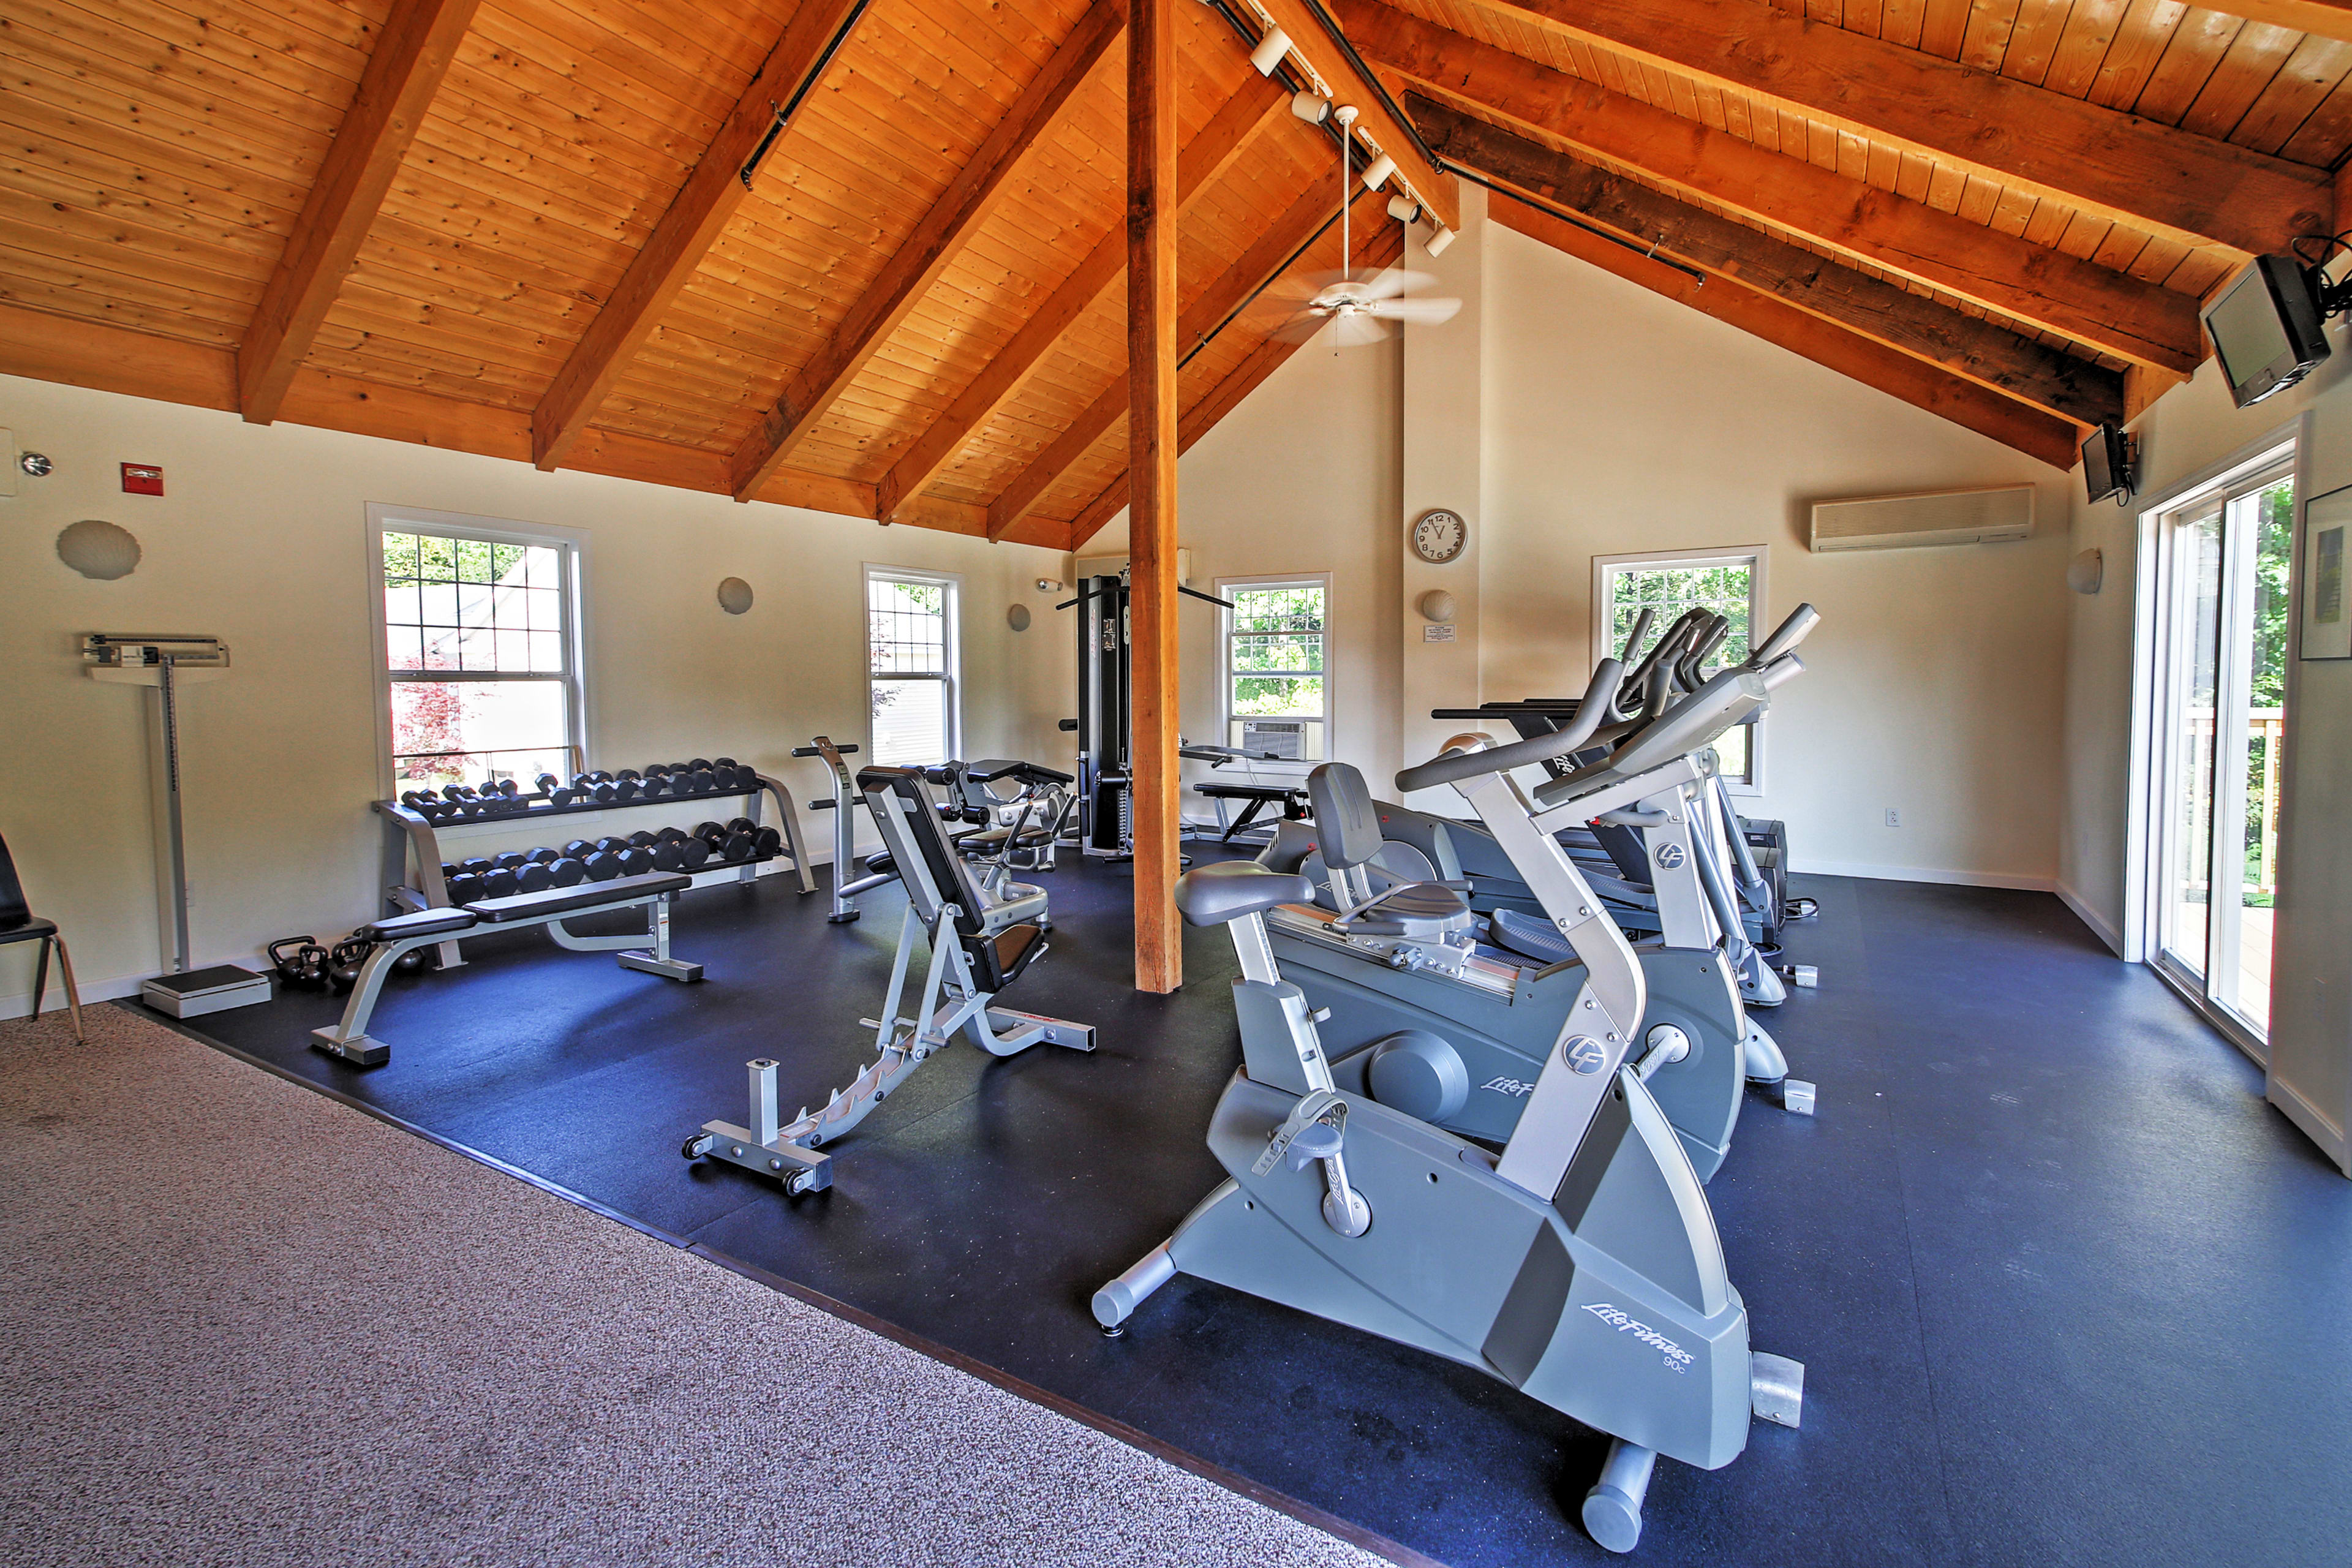 Blow off some steam in the community fitness room.